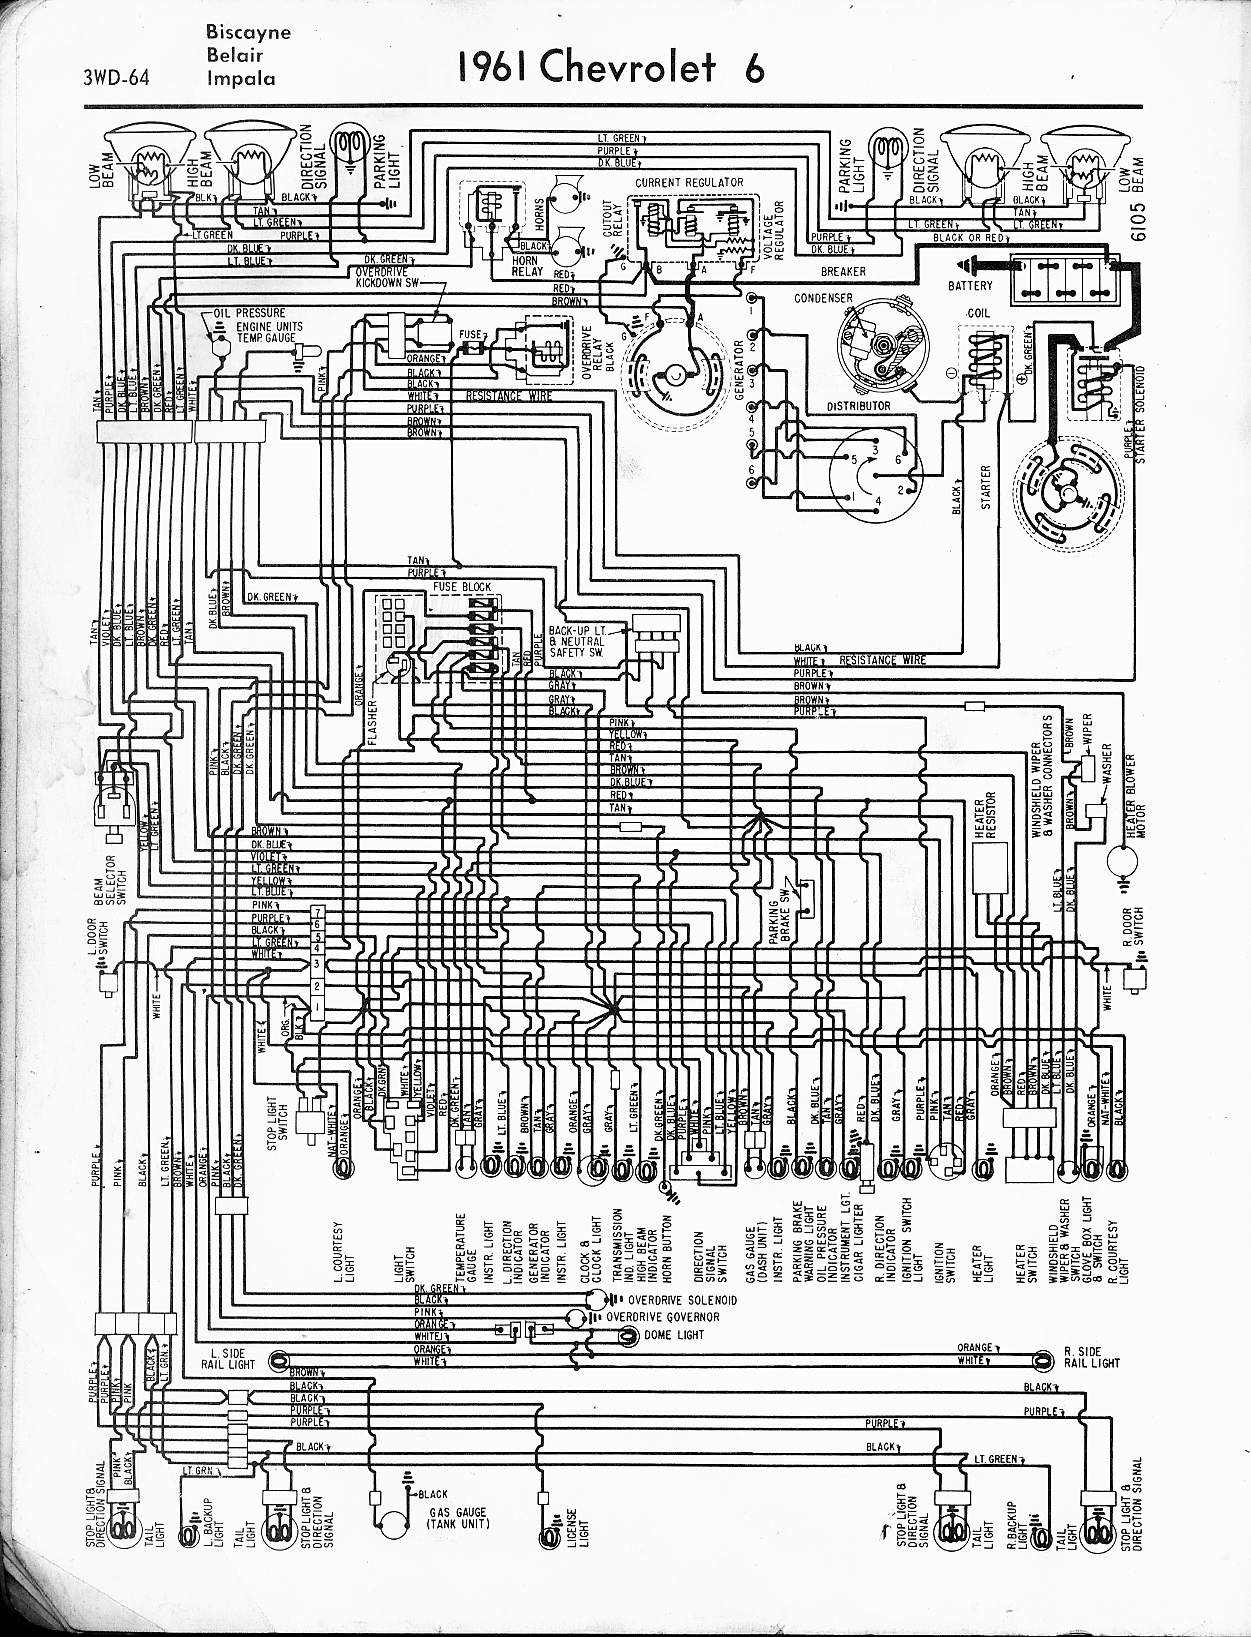 MWireChev61_3WD 064 57 65 chevy wiring diagrams 2001 chevy impala wiring diagram at webbmarketing.co